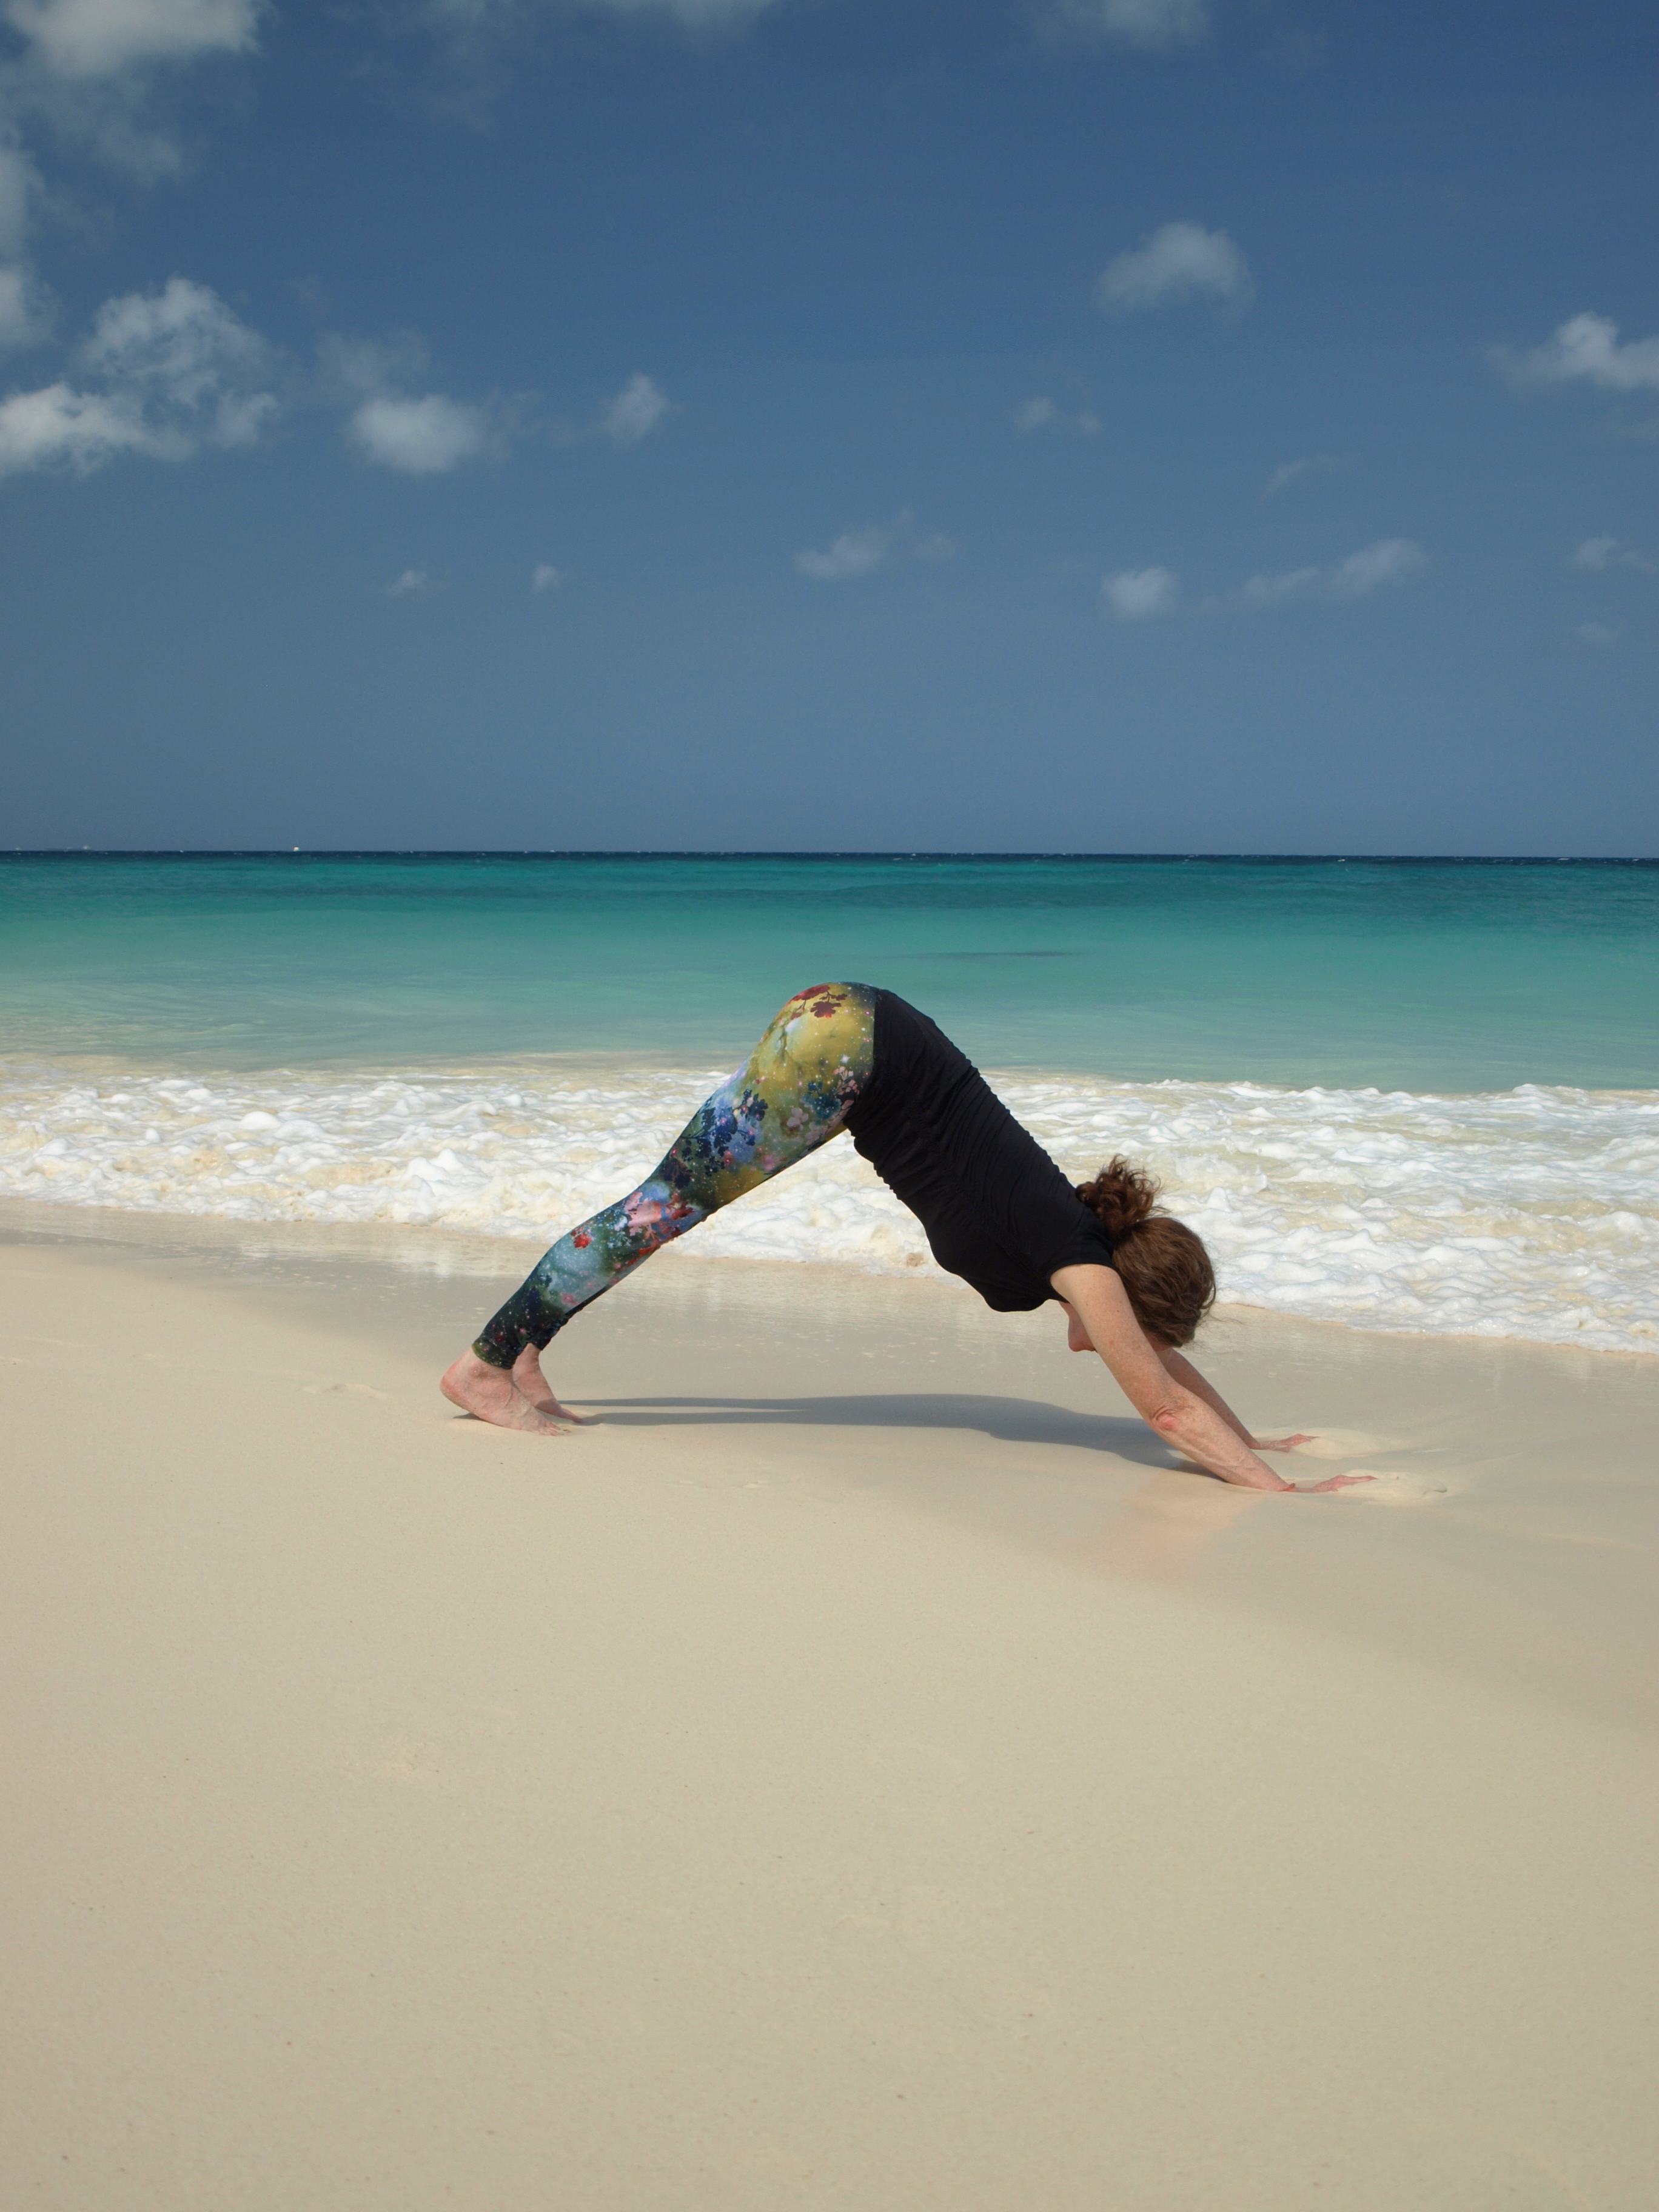 Olympus Digital Camera Nothing Better Than A Daily Downward Dog On The Beach